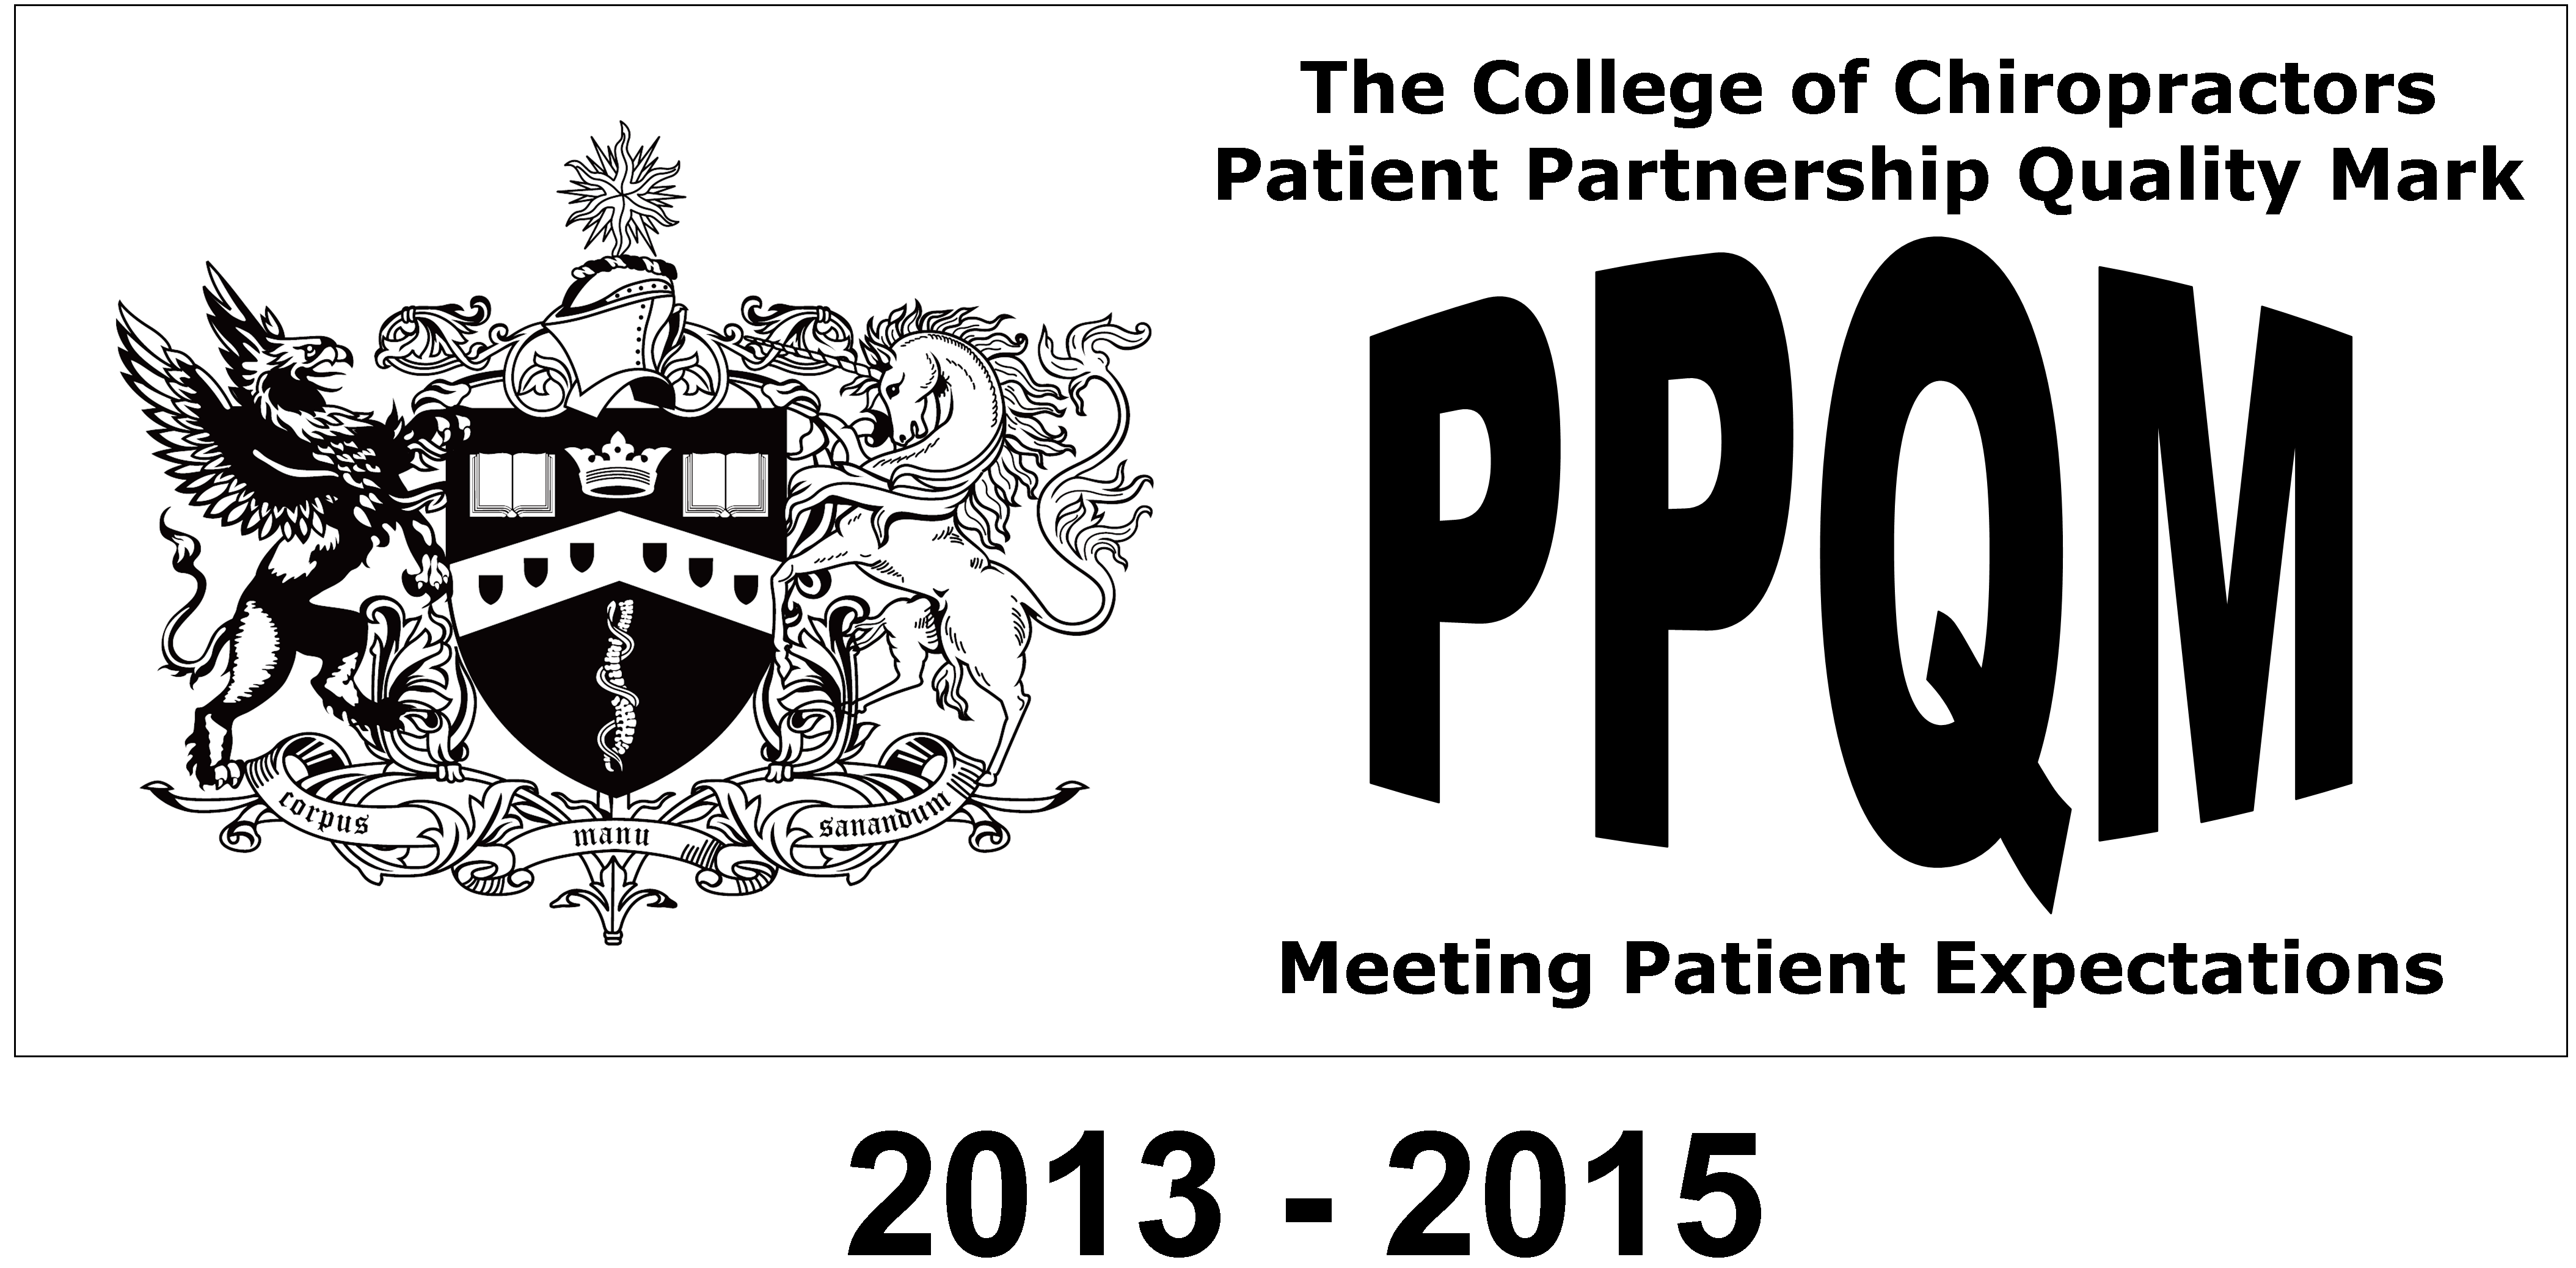 The College of Chiropractors PPQM 2013-2015